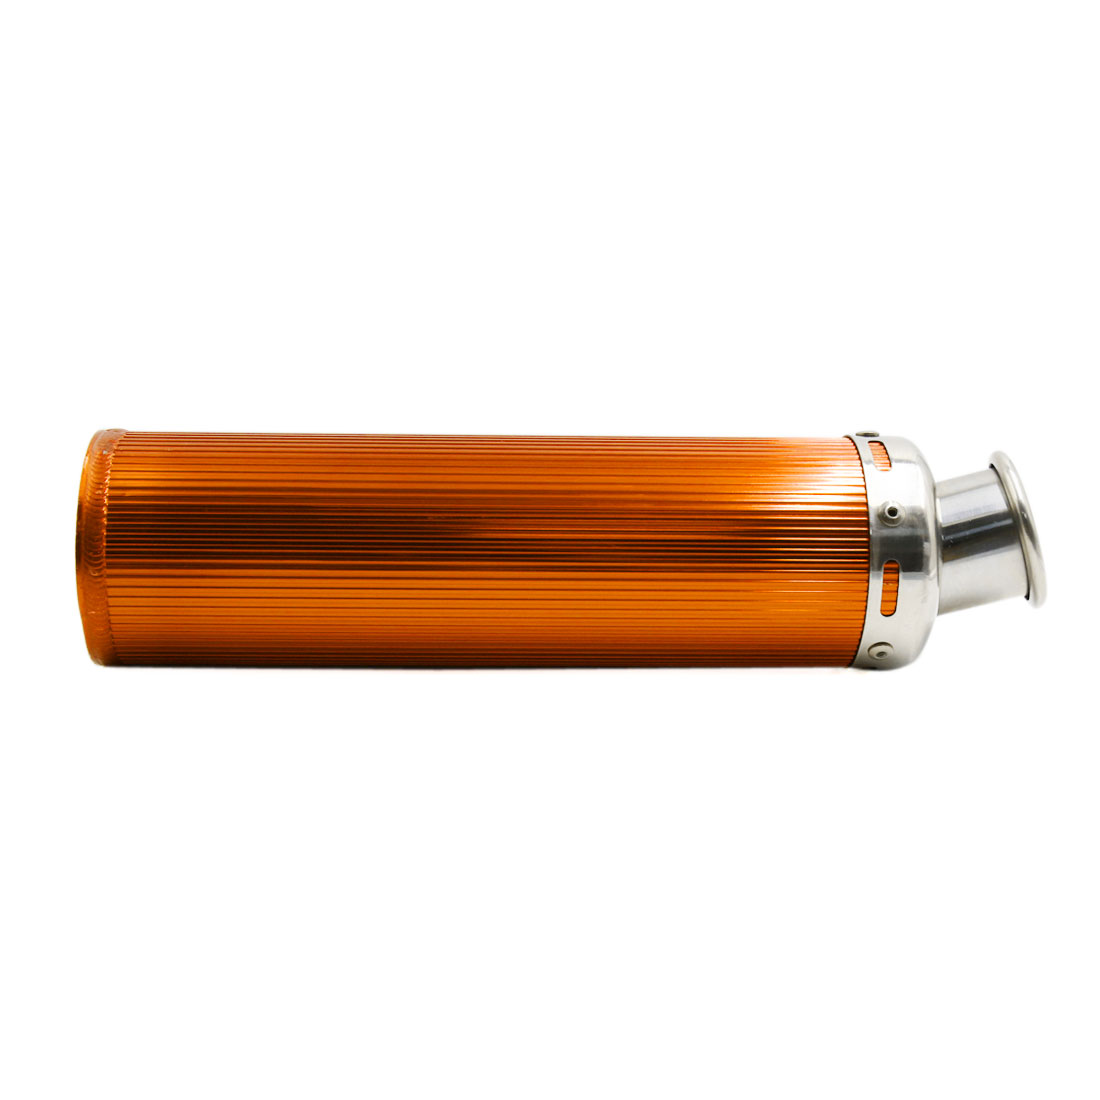 360 x 90mm Gold Tone Aluminum Alloy Cylinder Shaped Motorcycle Exhaust Pipe - image 4 de 5